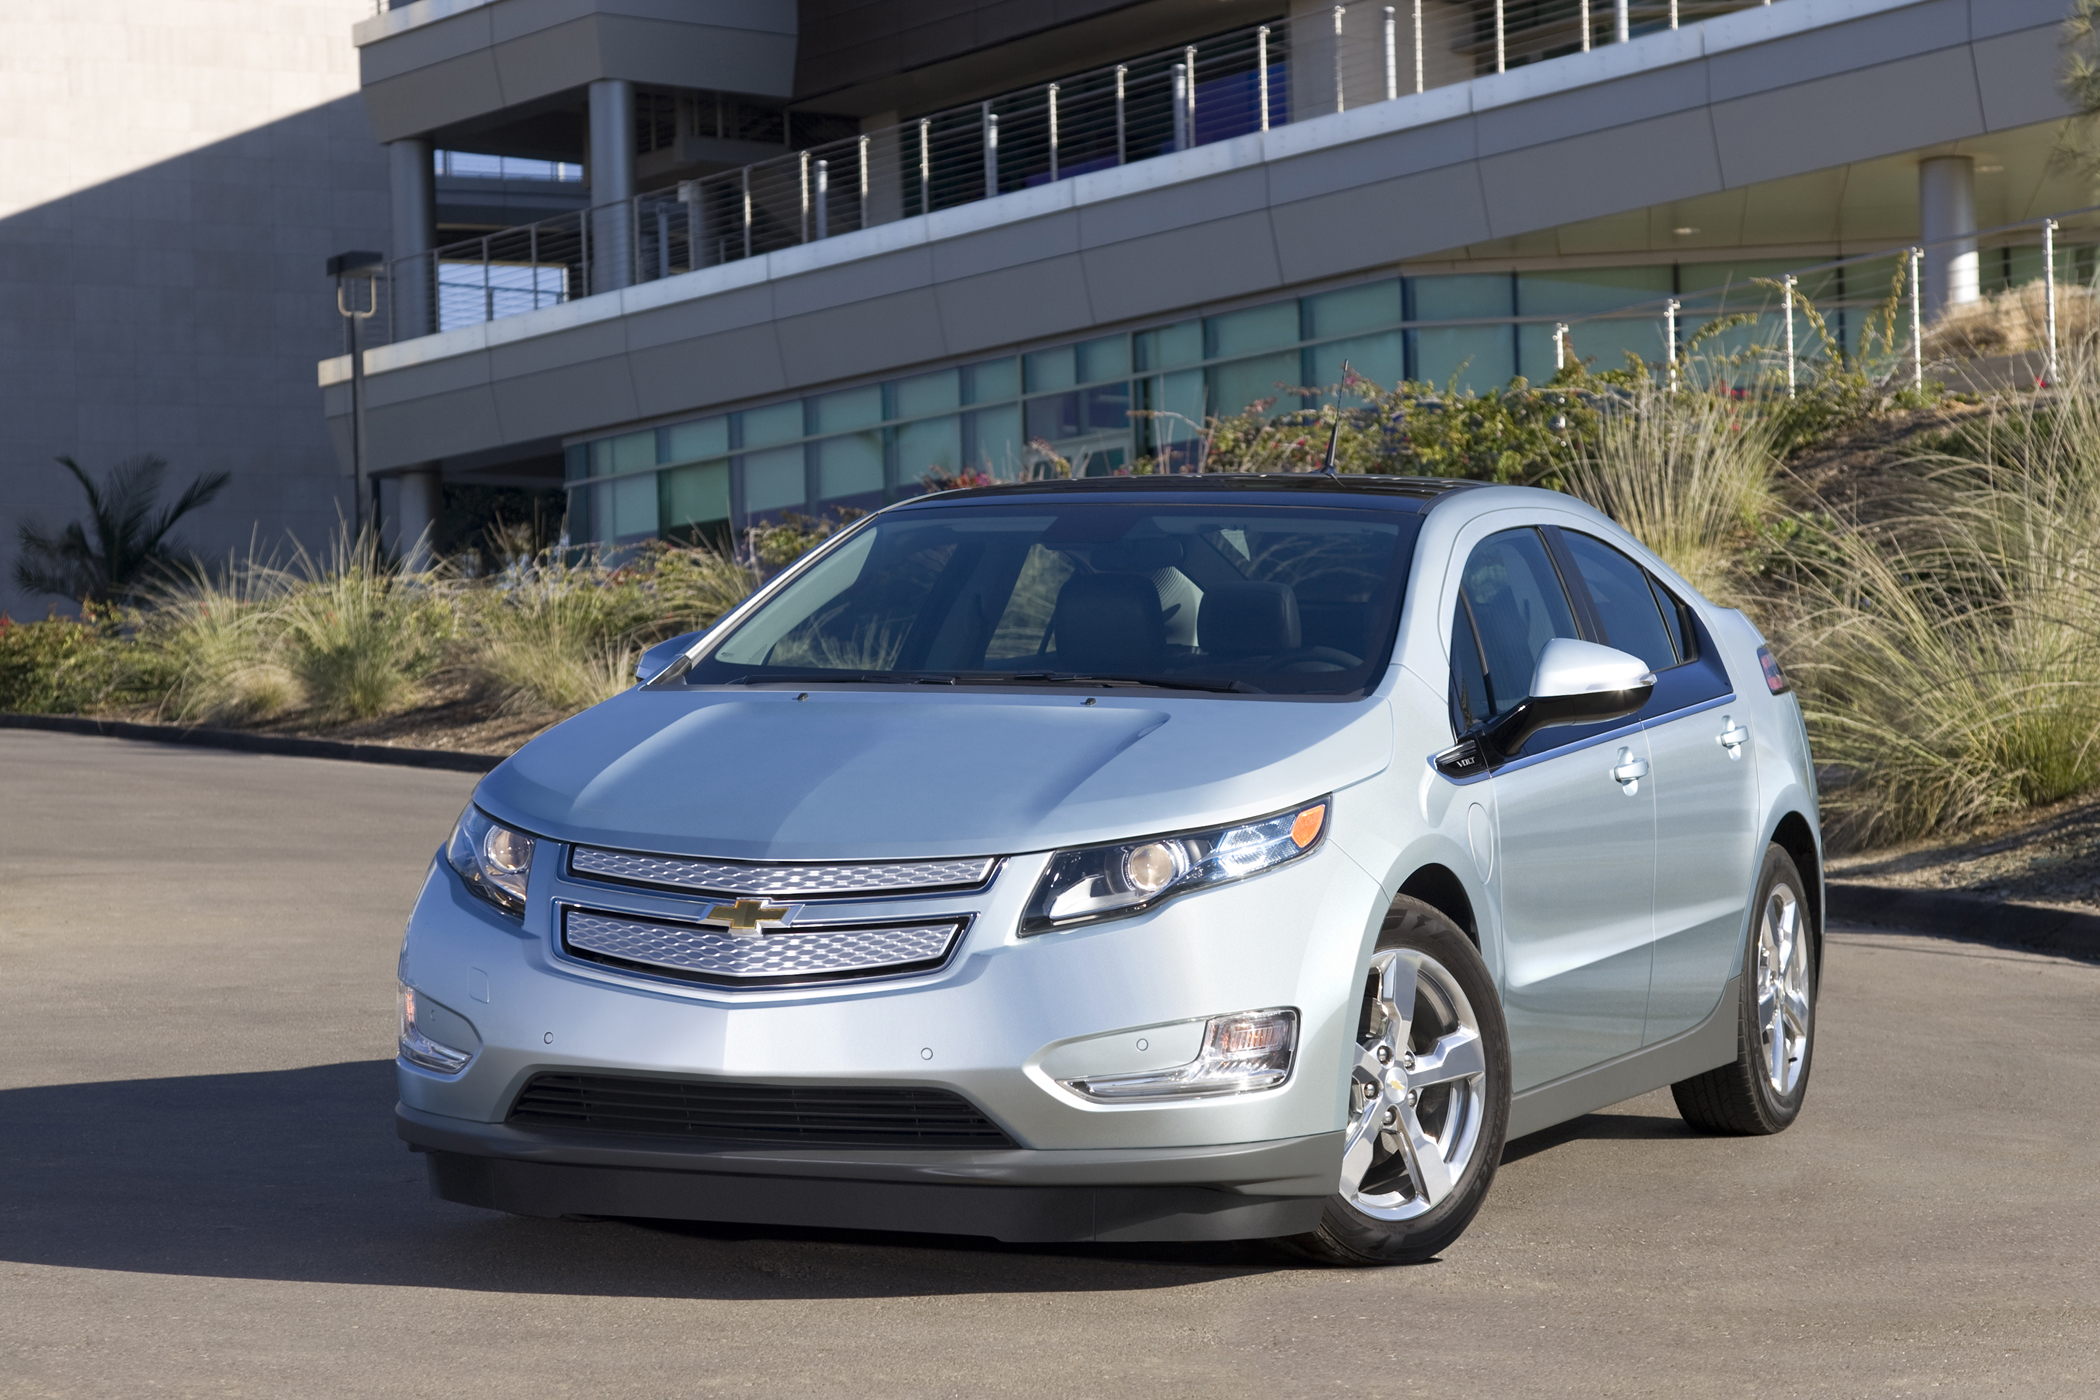 Plugged In Reinventing The American Car 2011 Chevy Volt New On Electric Its Different To Drive A Good Way And Certainly Enables Smug Feeling Of Enviro Superiority Ones Who Will Most Like Are Those